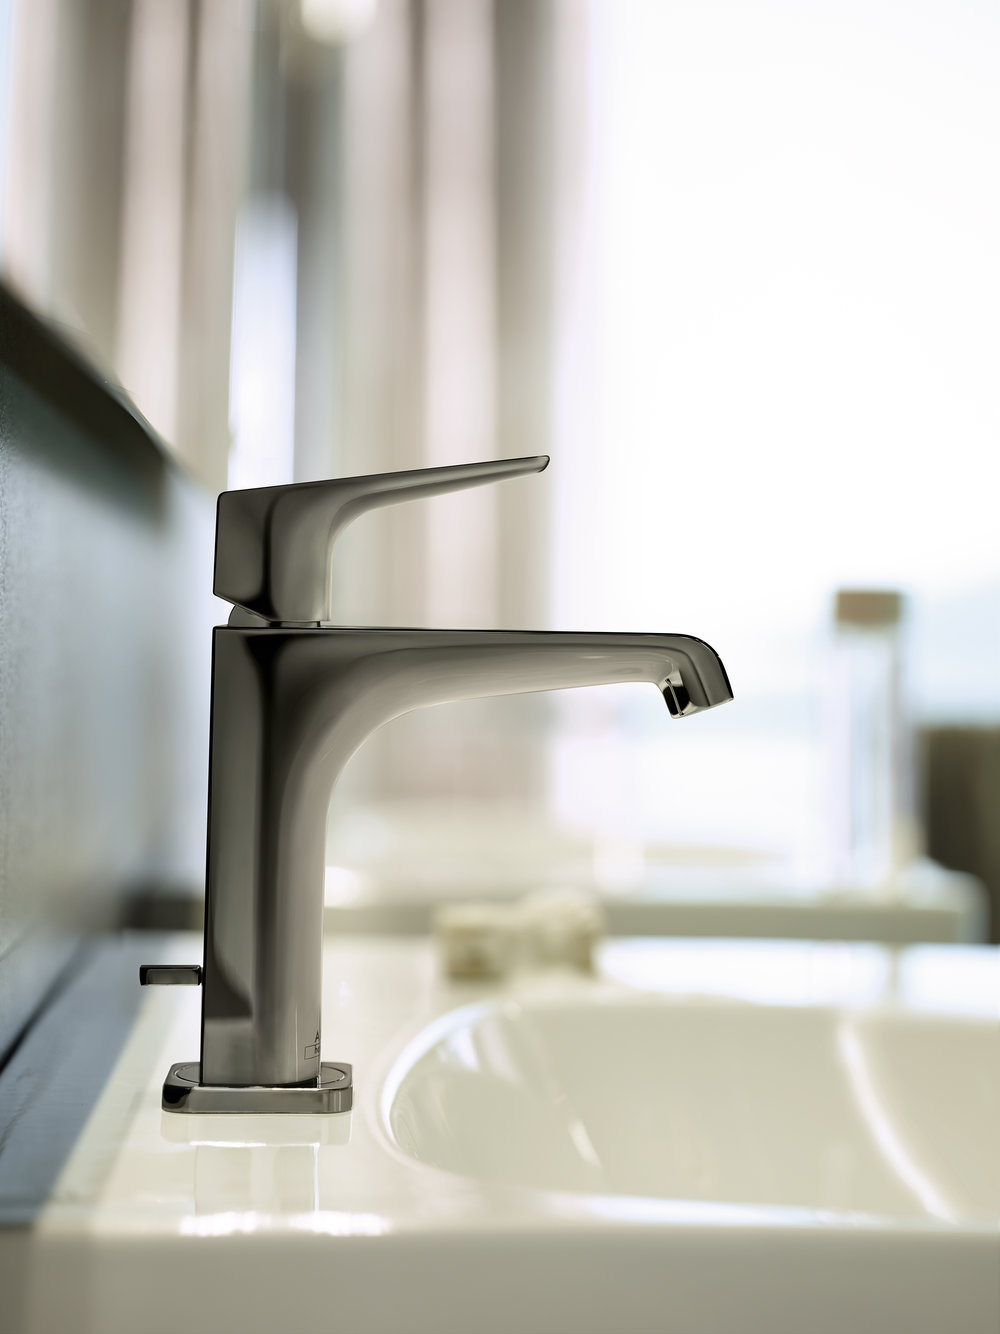 montclair kitchen waterstone bathworks gantry axor faucets faucet instyle california htm wtr